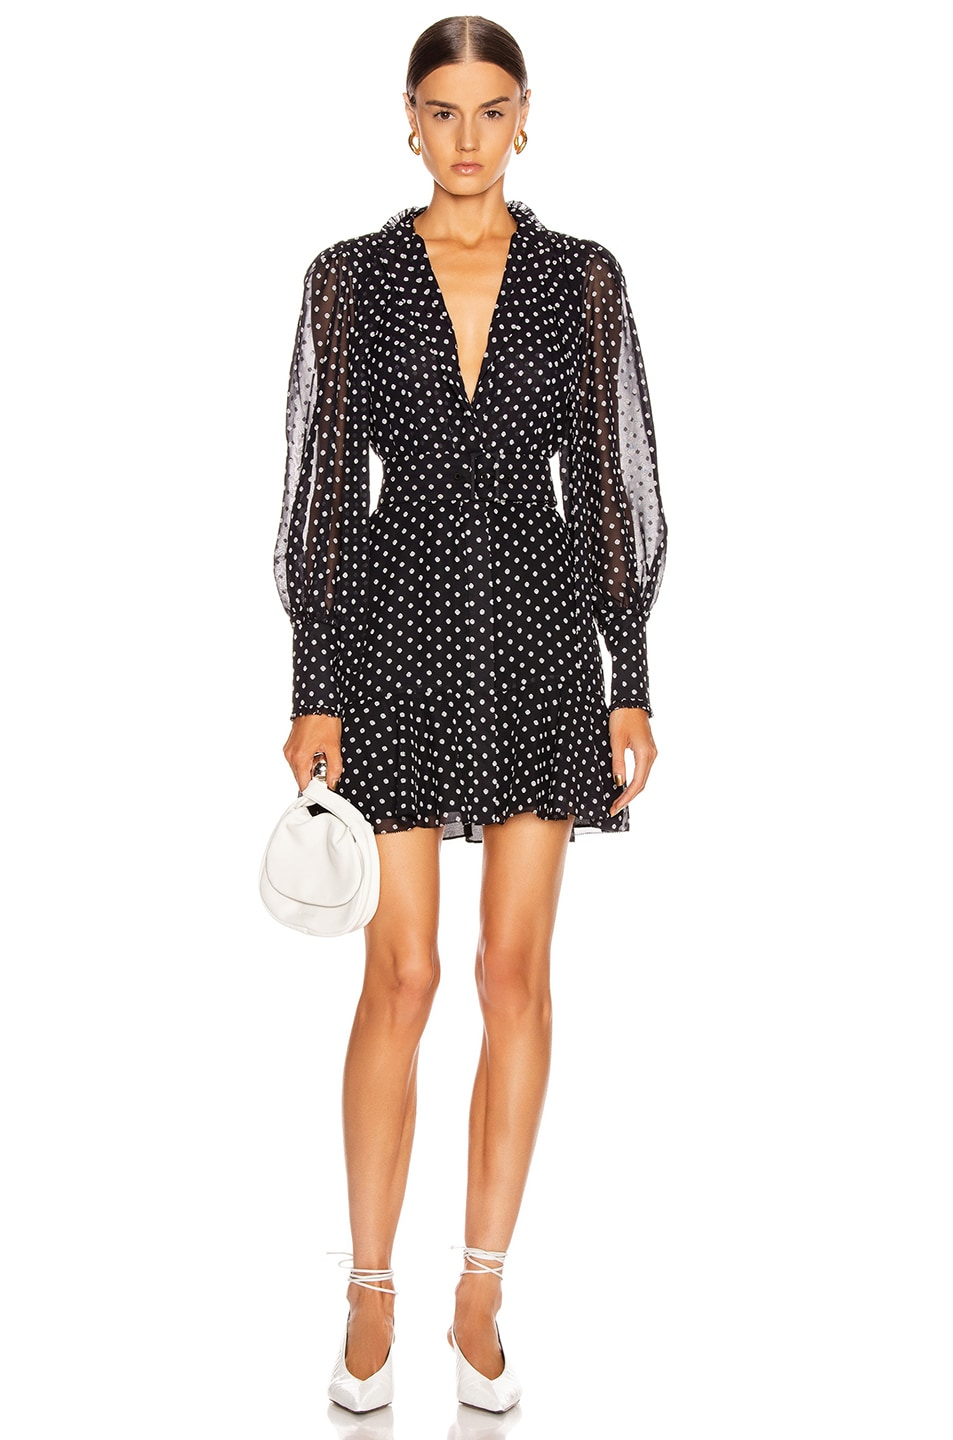 Image 1 of Alexis Ivette Dress in Black Embroidered Dot